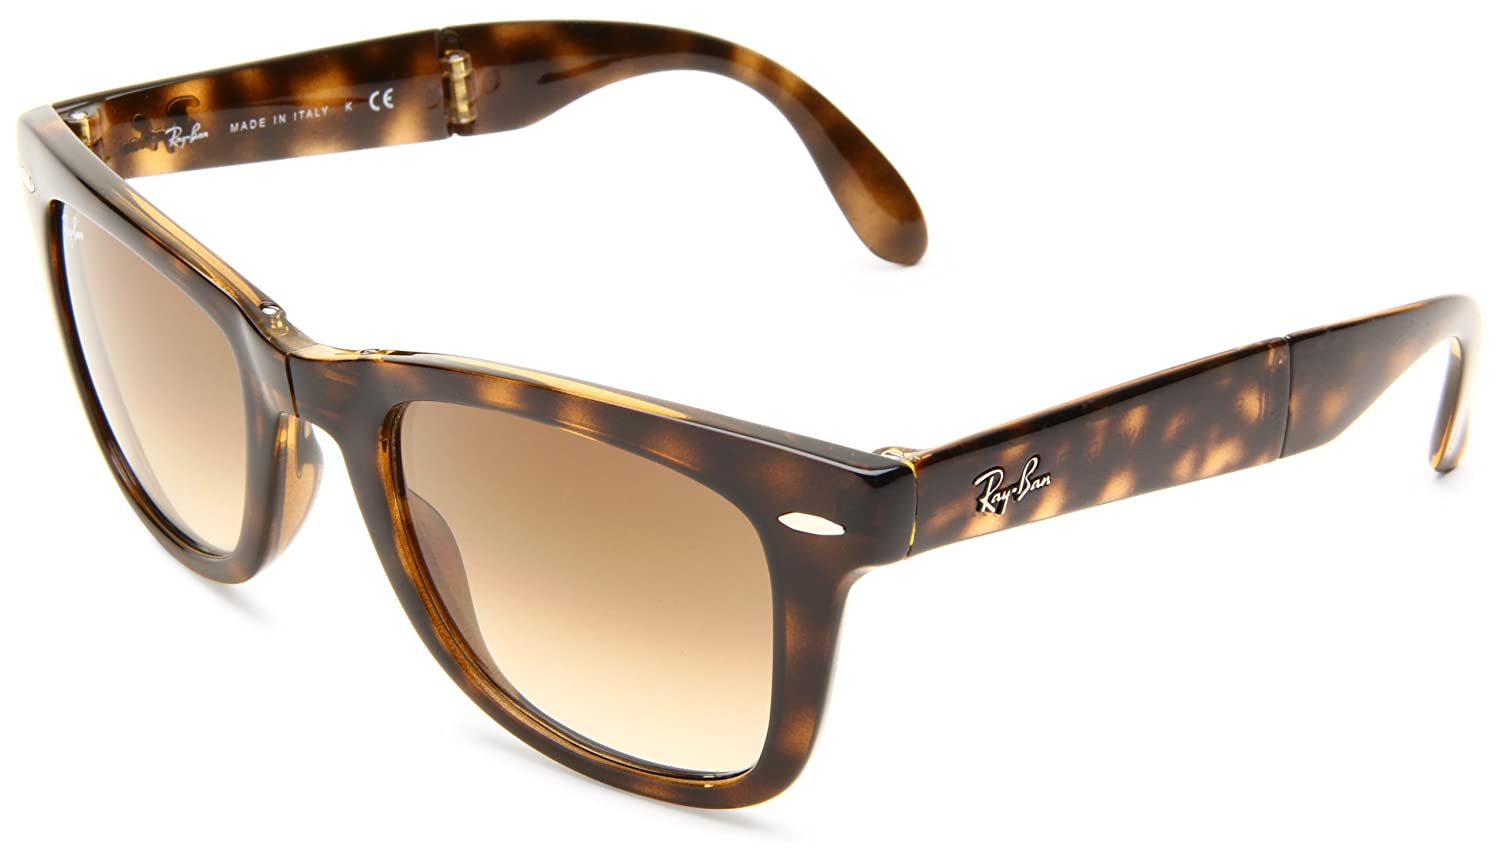 Ray Ban RB4105 Wayfarer Sunglasses